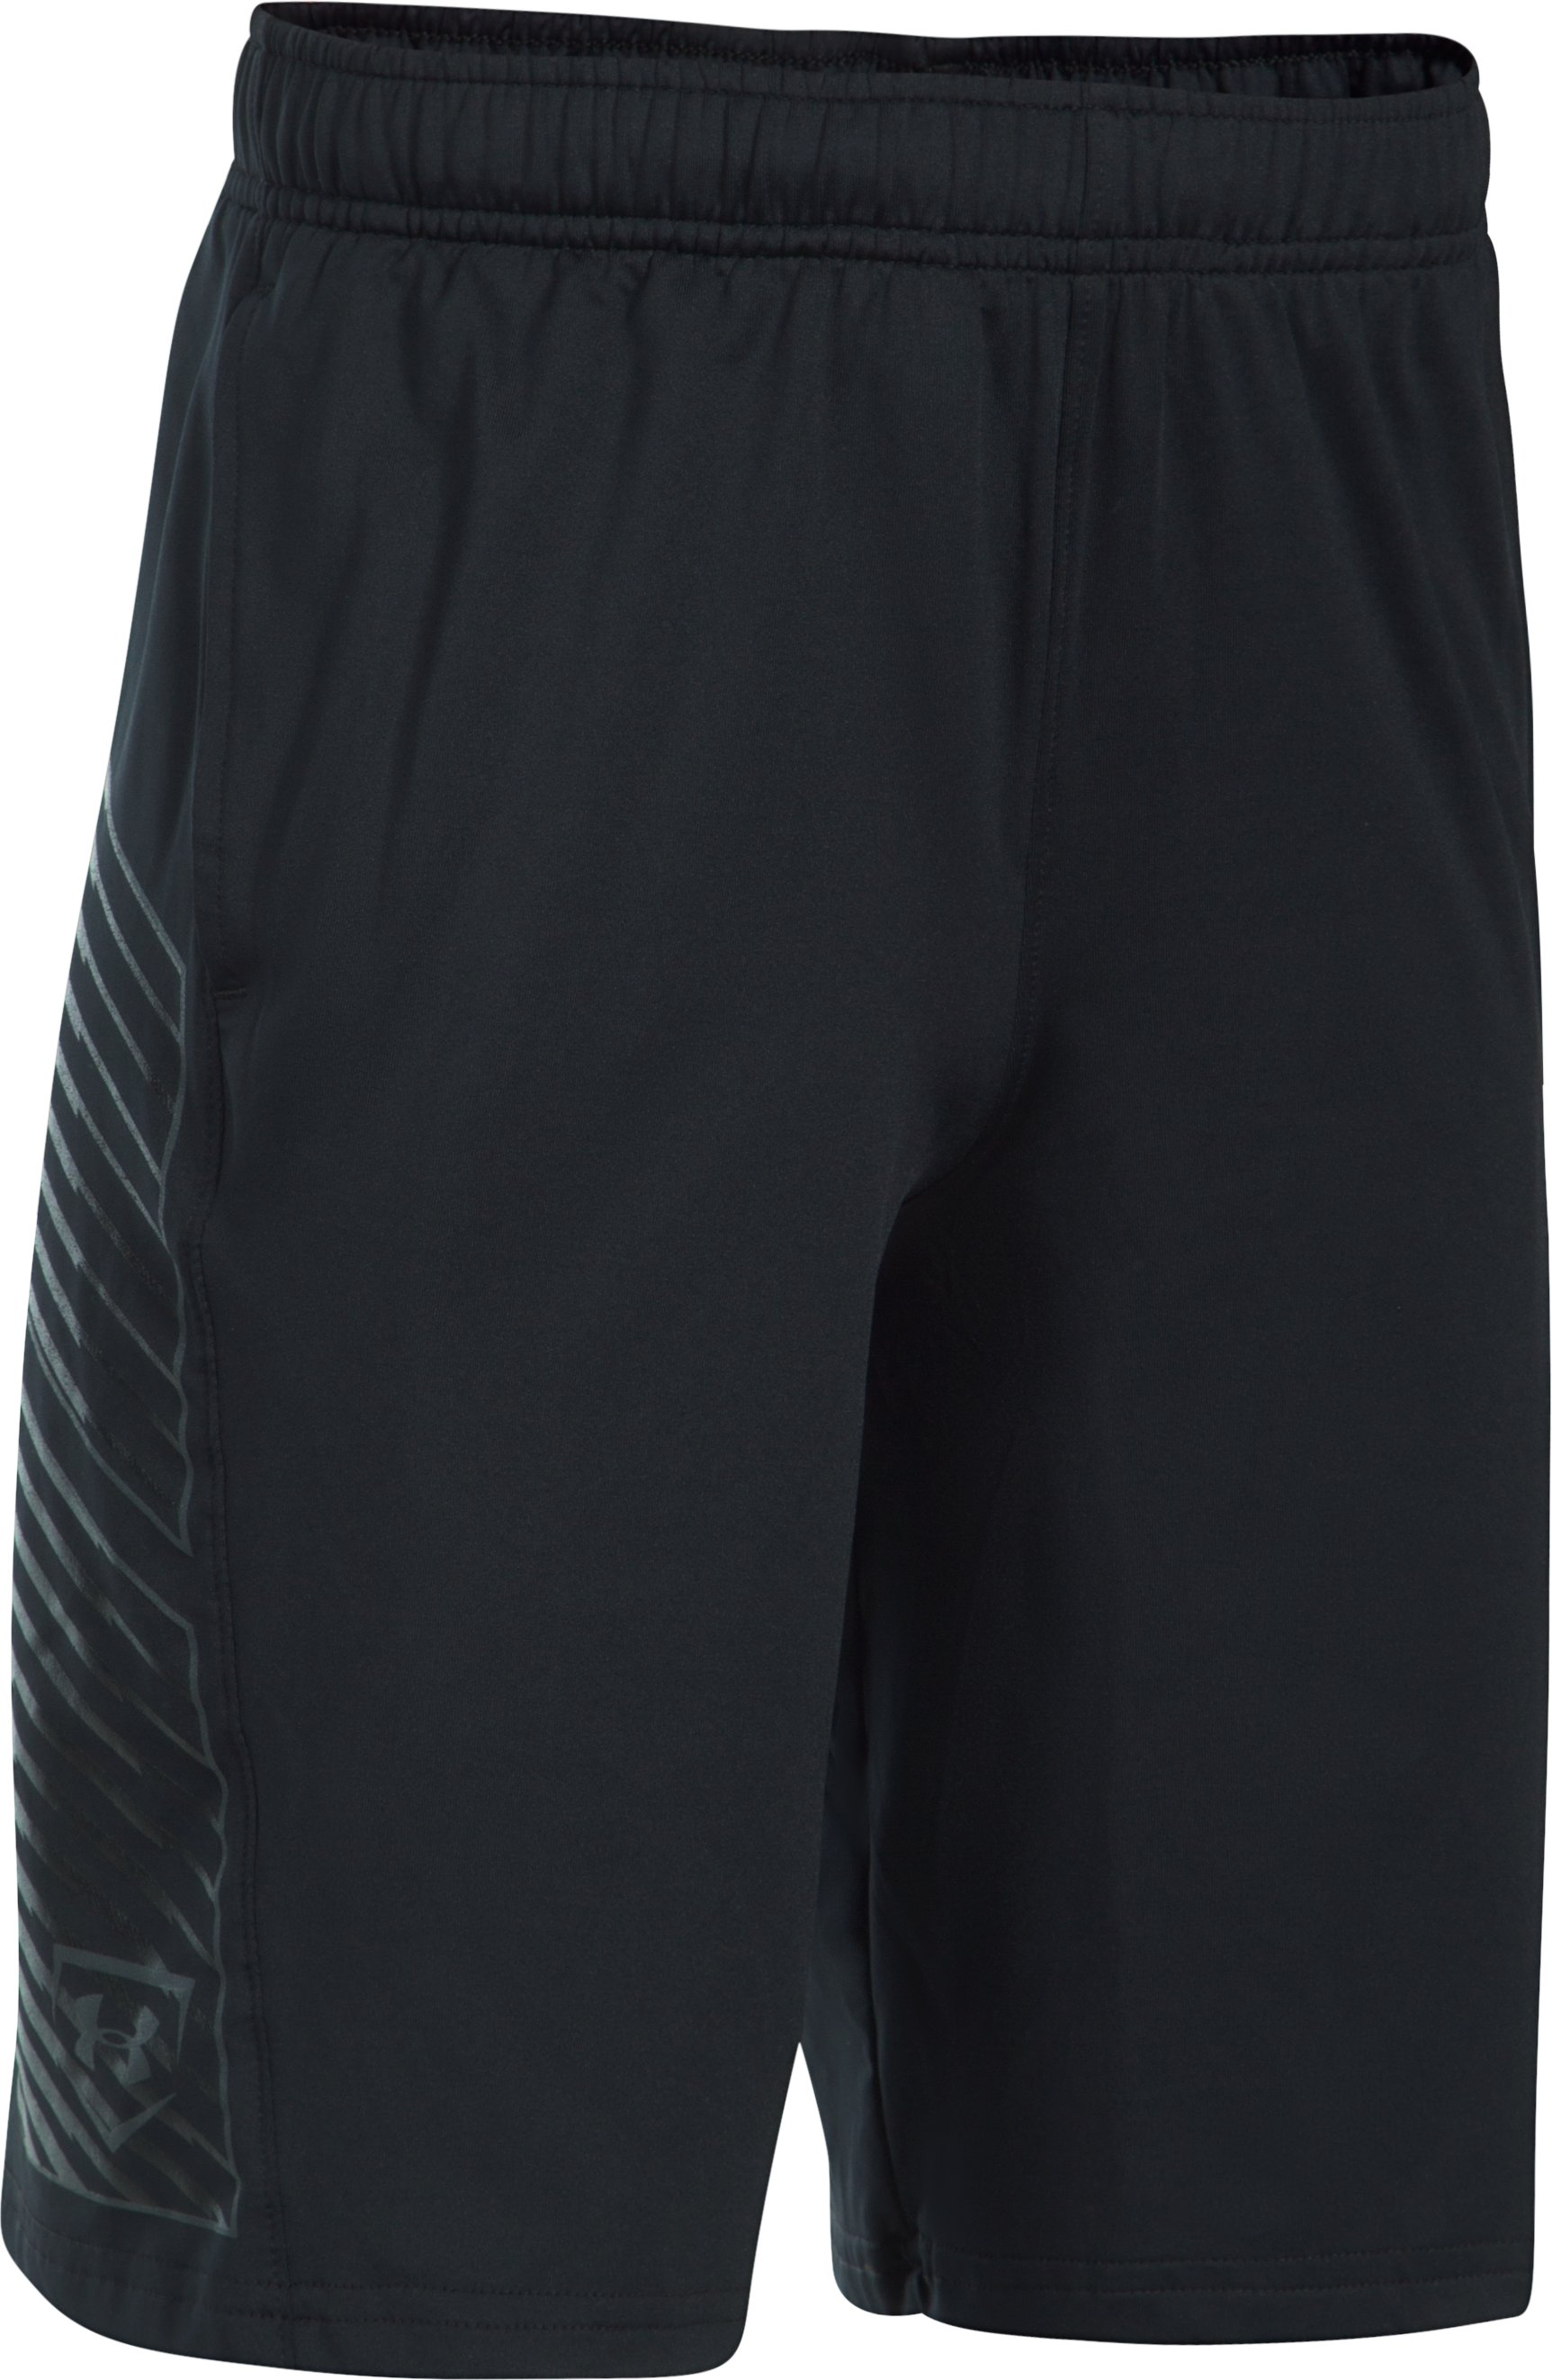 Boys' UA Baseball Training Shorts, Black